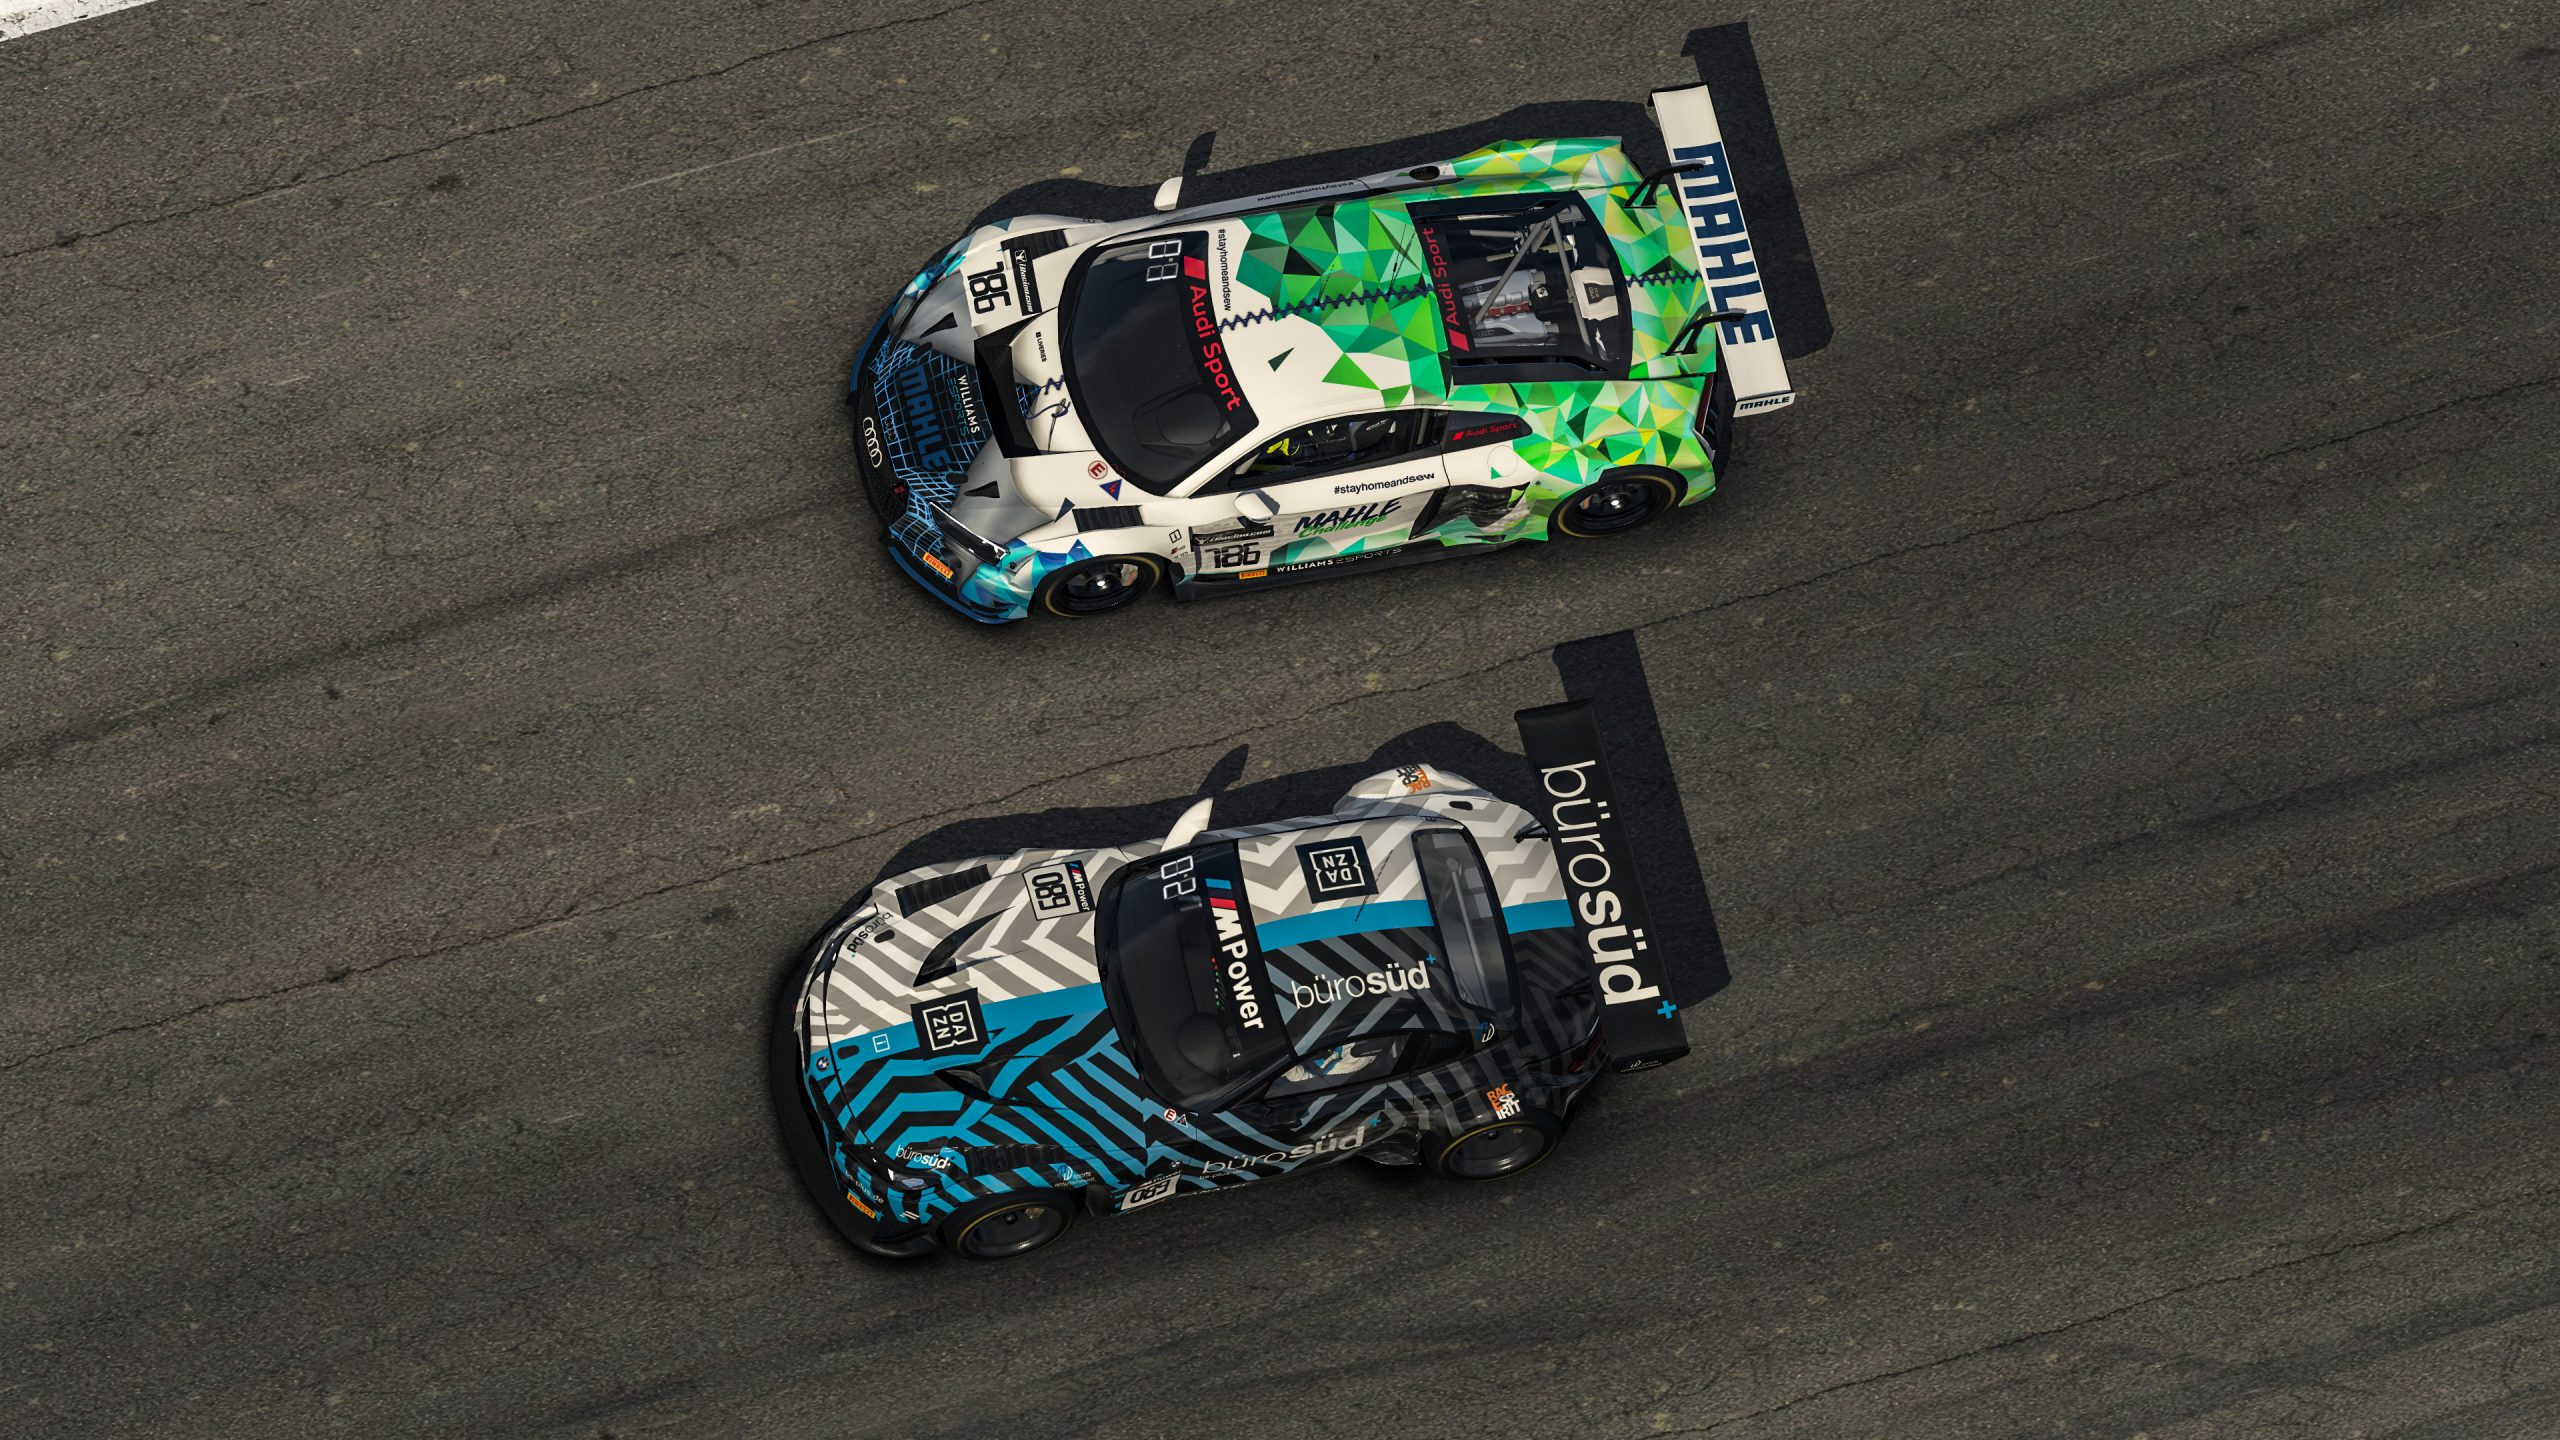 VCO Grand Slam visits the 'Green Hell': Stage set for the iRacing 24h Nürburgring powered by VCO | Fastmail